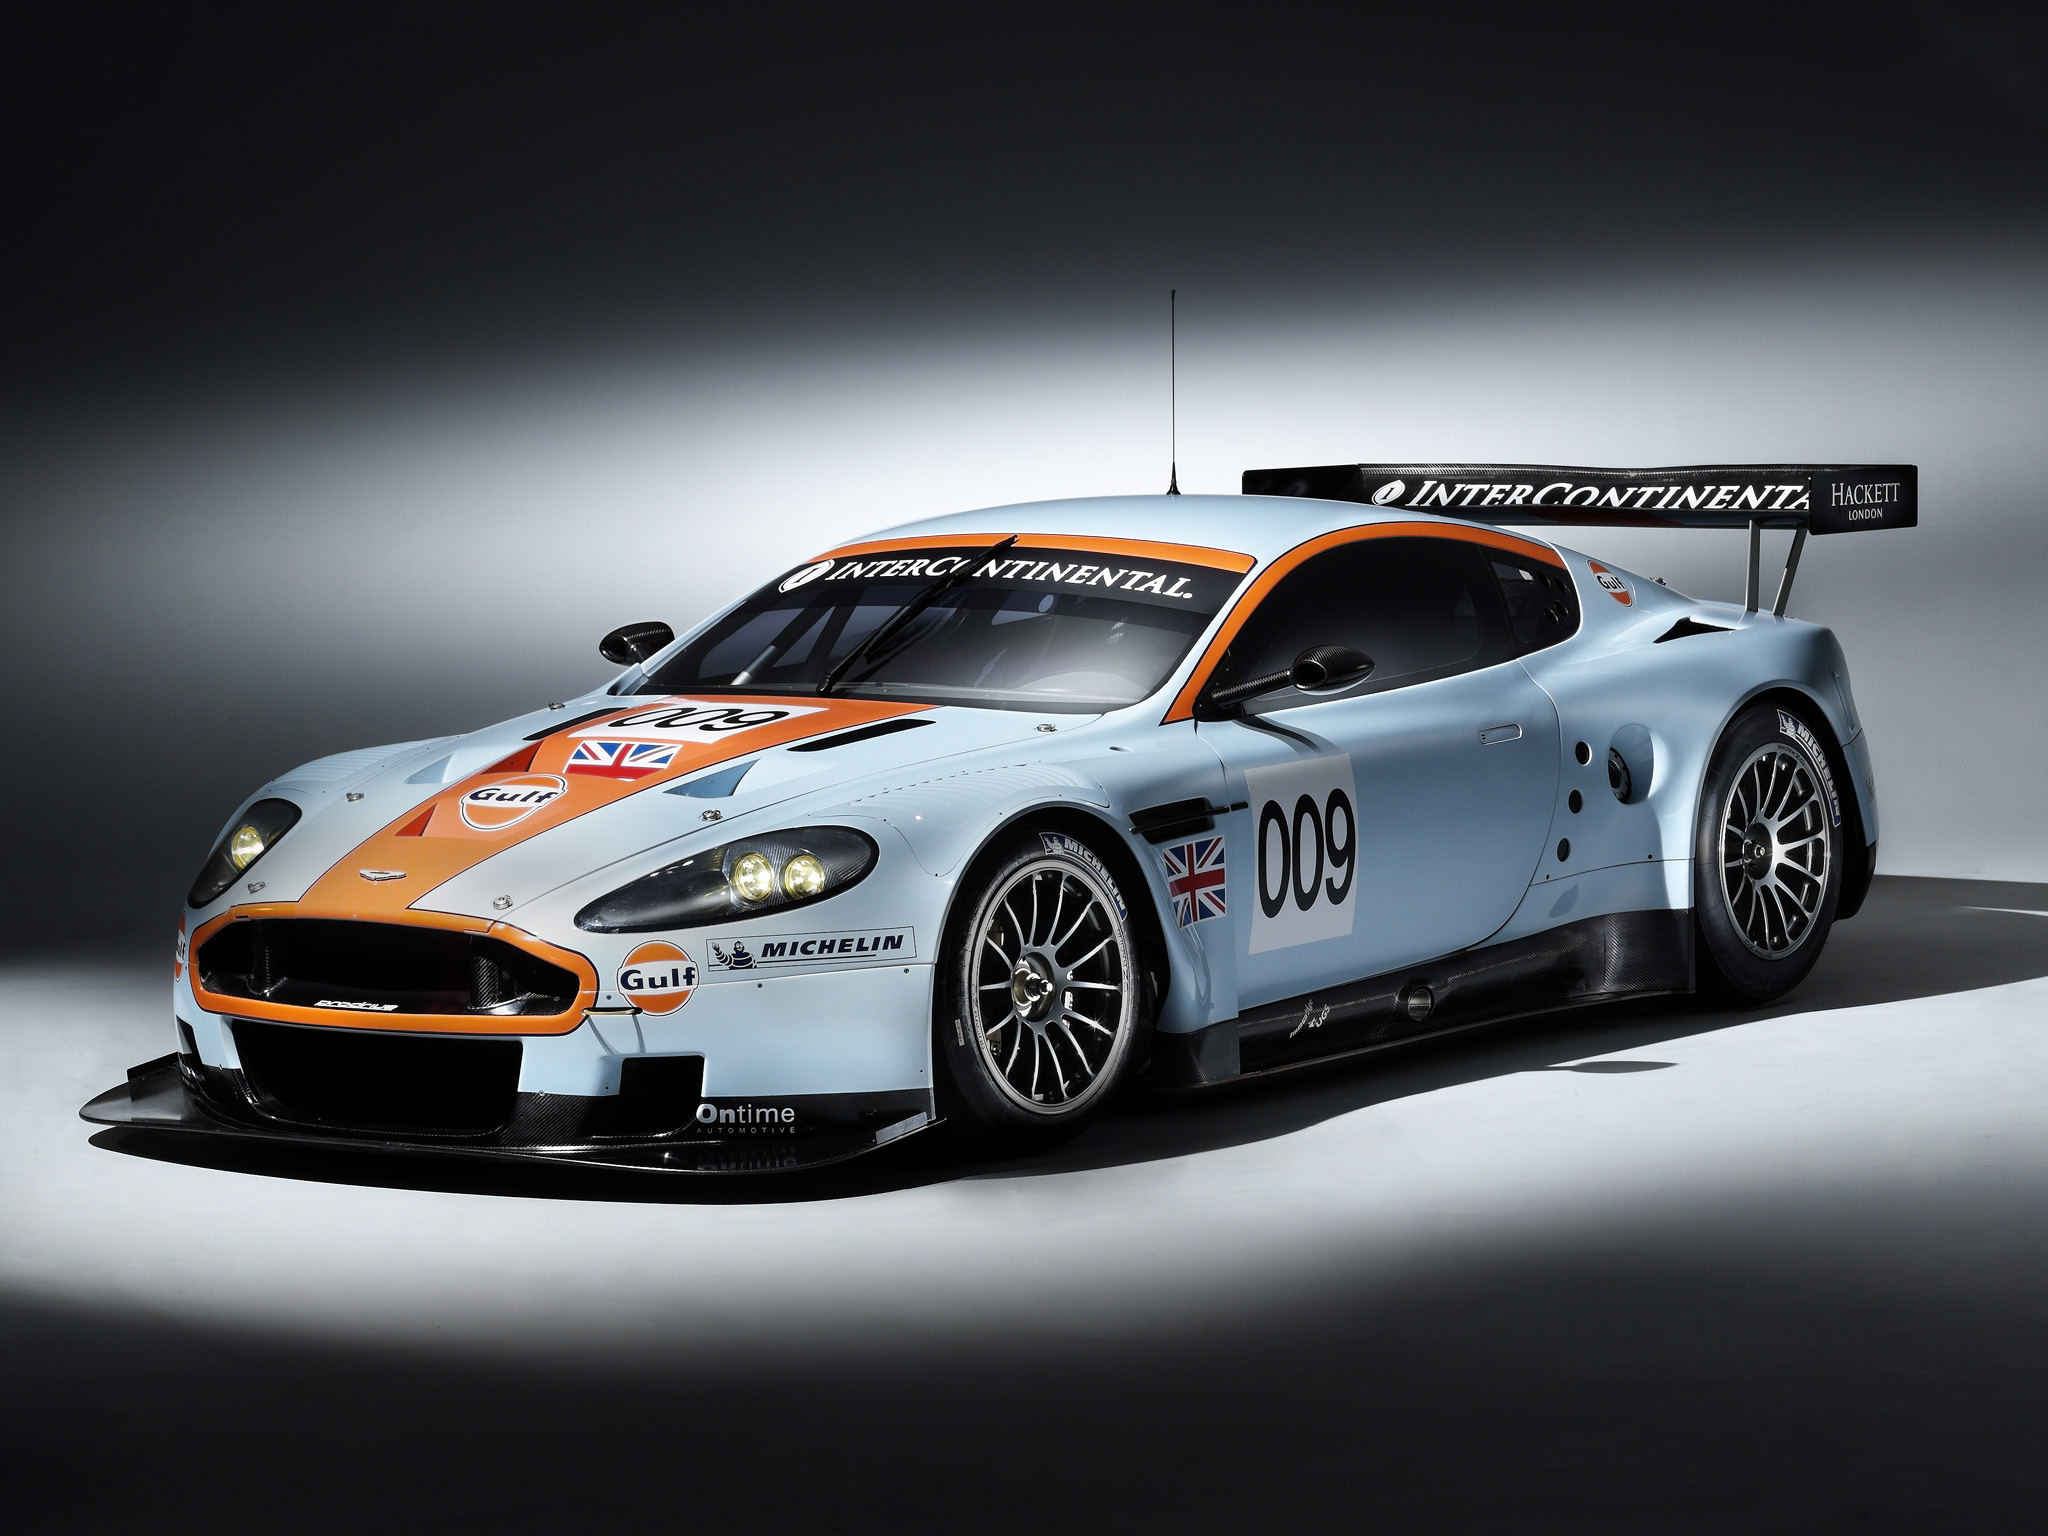 2008 Aston Martin Dbr9 Gulf Oil Livery Race Racing R Interiors Inside Ideas Interiors design about Everything [magnanprojects.com]